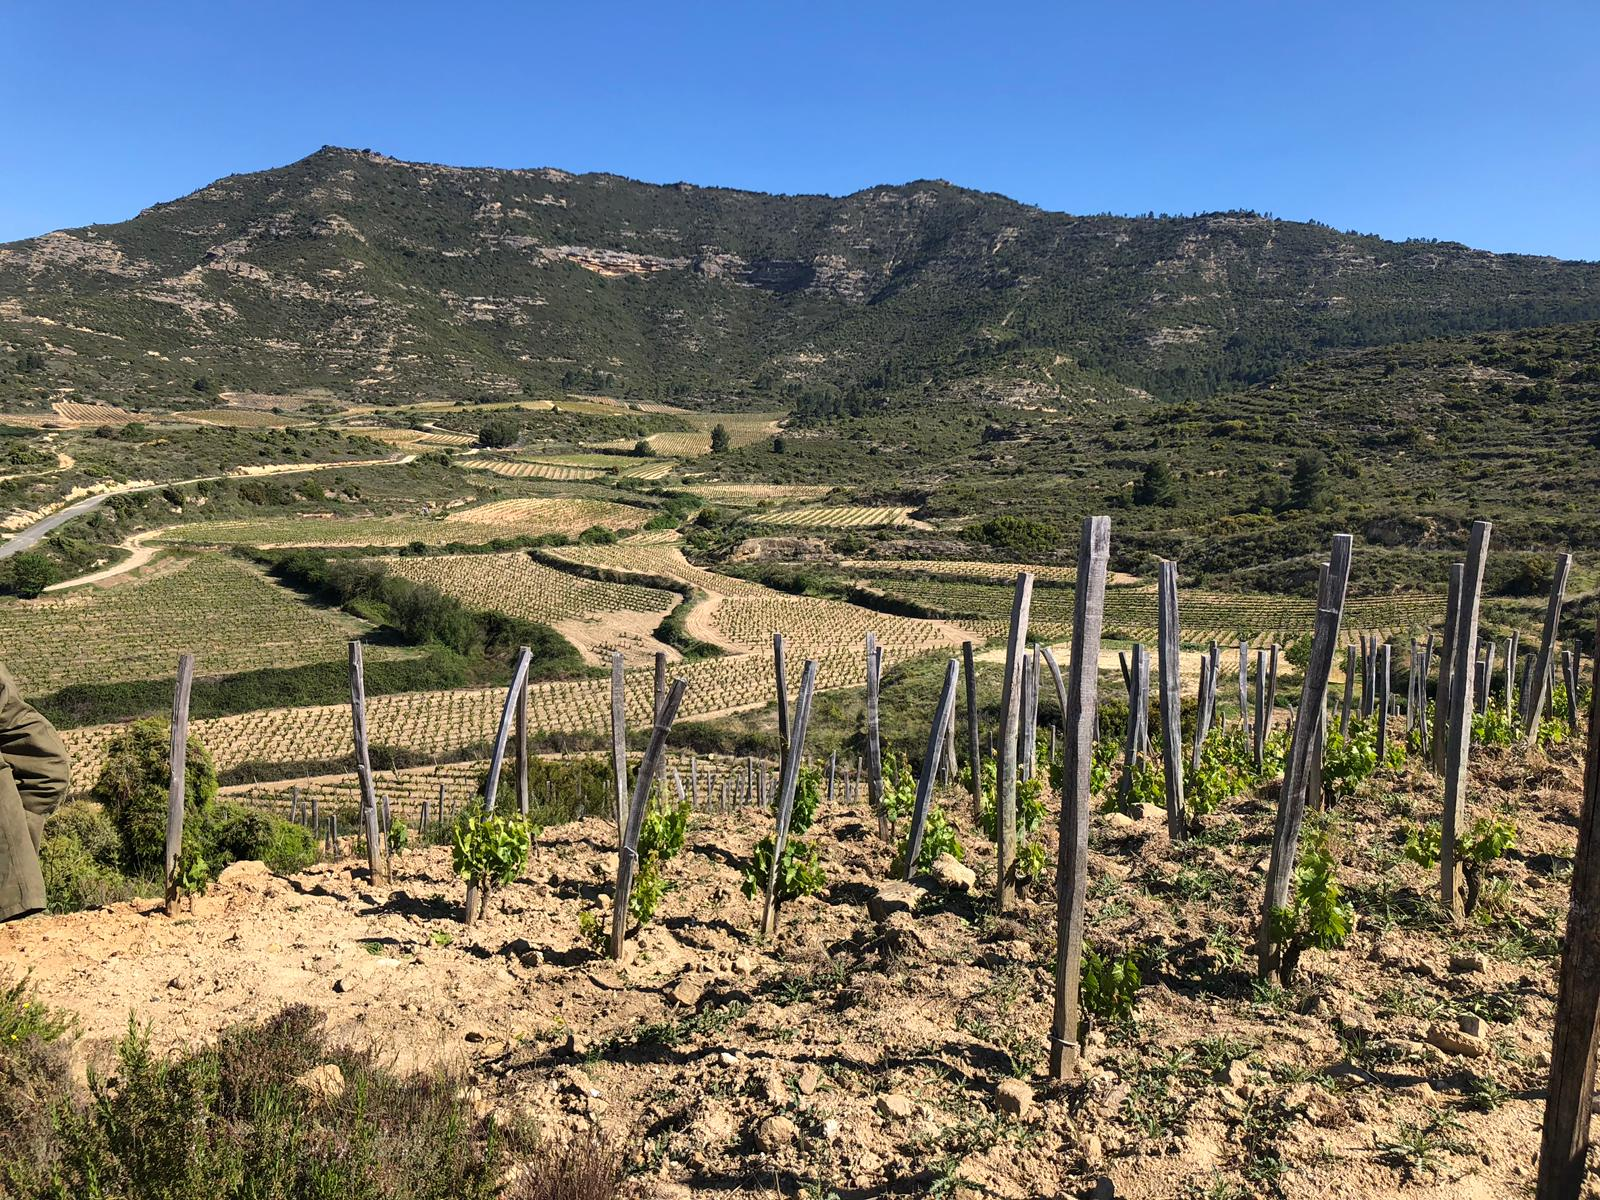 Las Beatas - a tiny 1.9 hectare plot – slowly assembled by acquiring smaller neighbouring parcels on the abandoned old terraces.